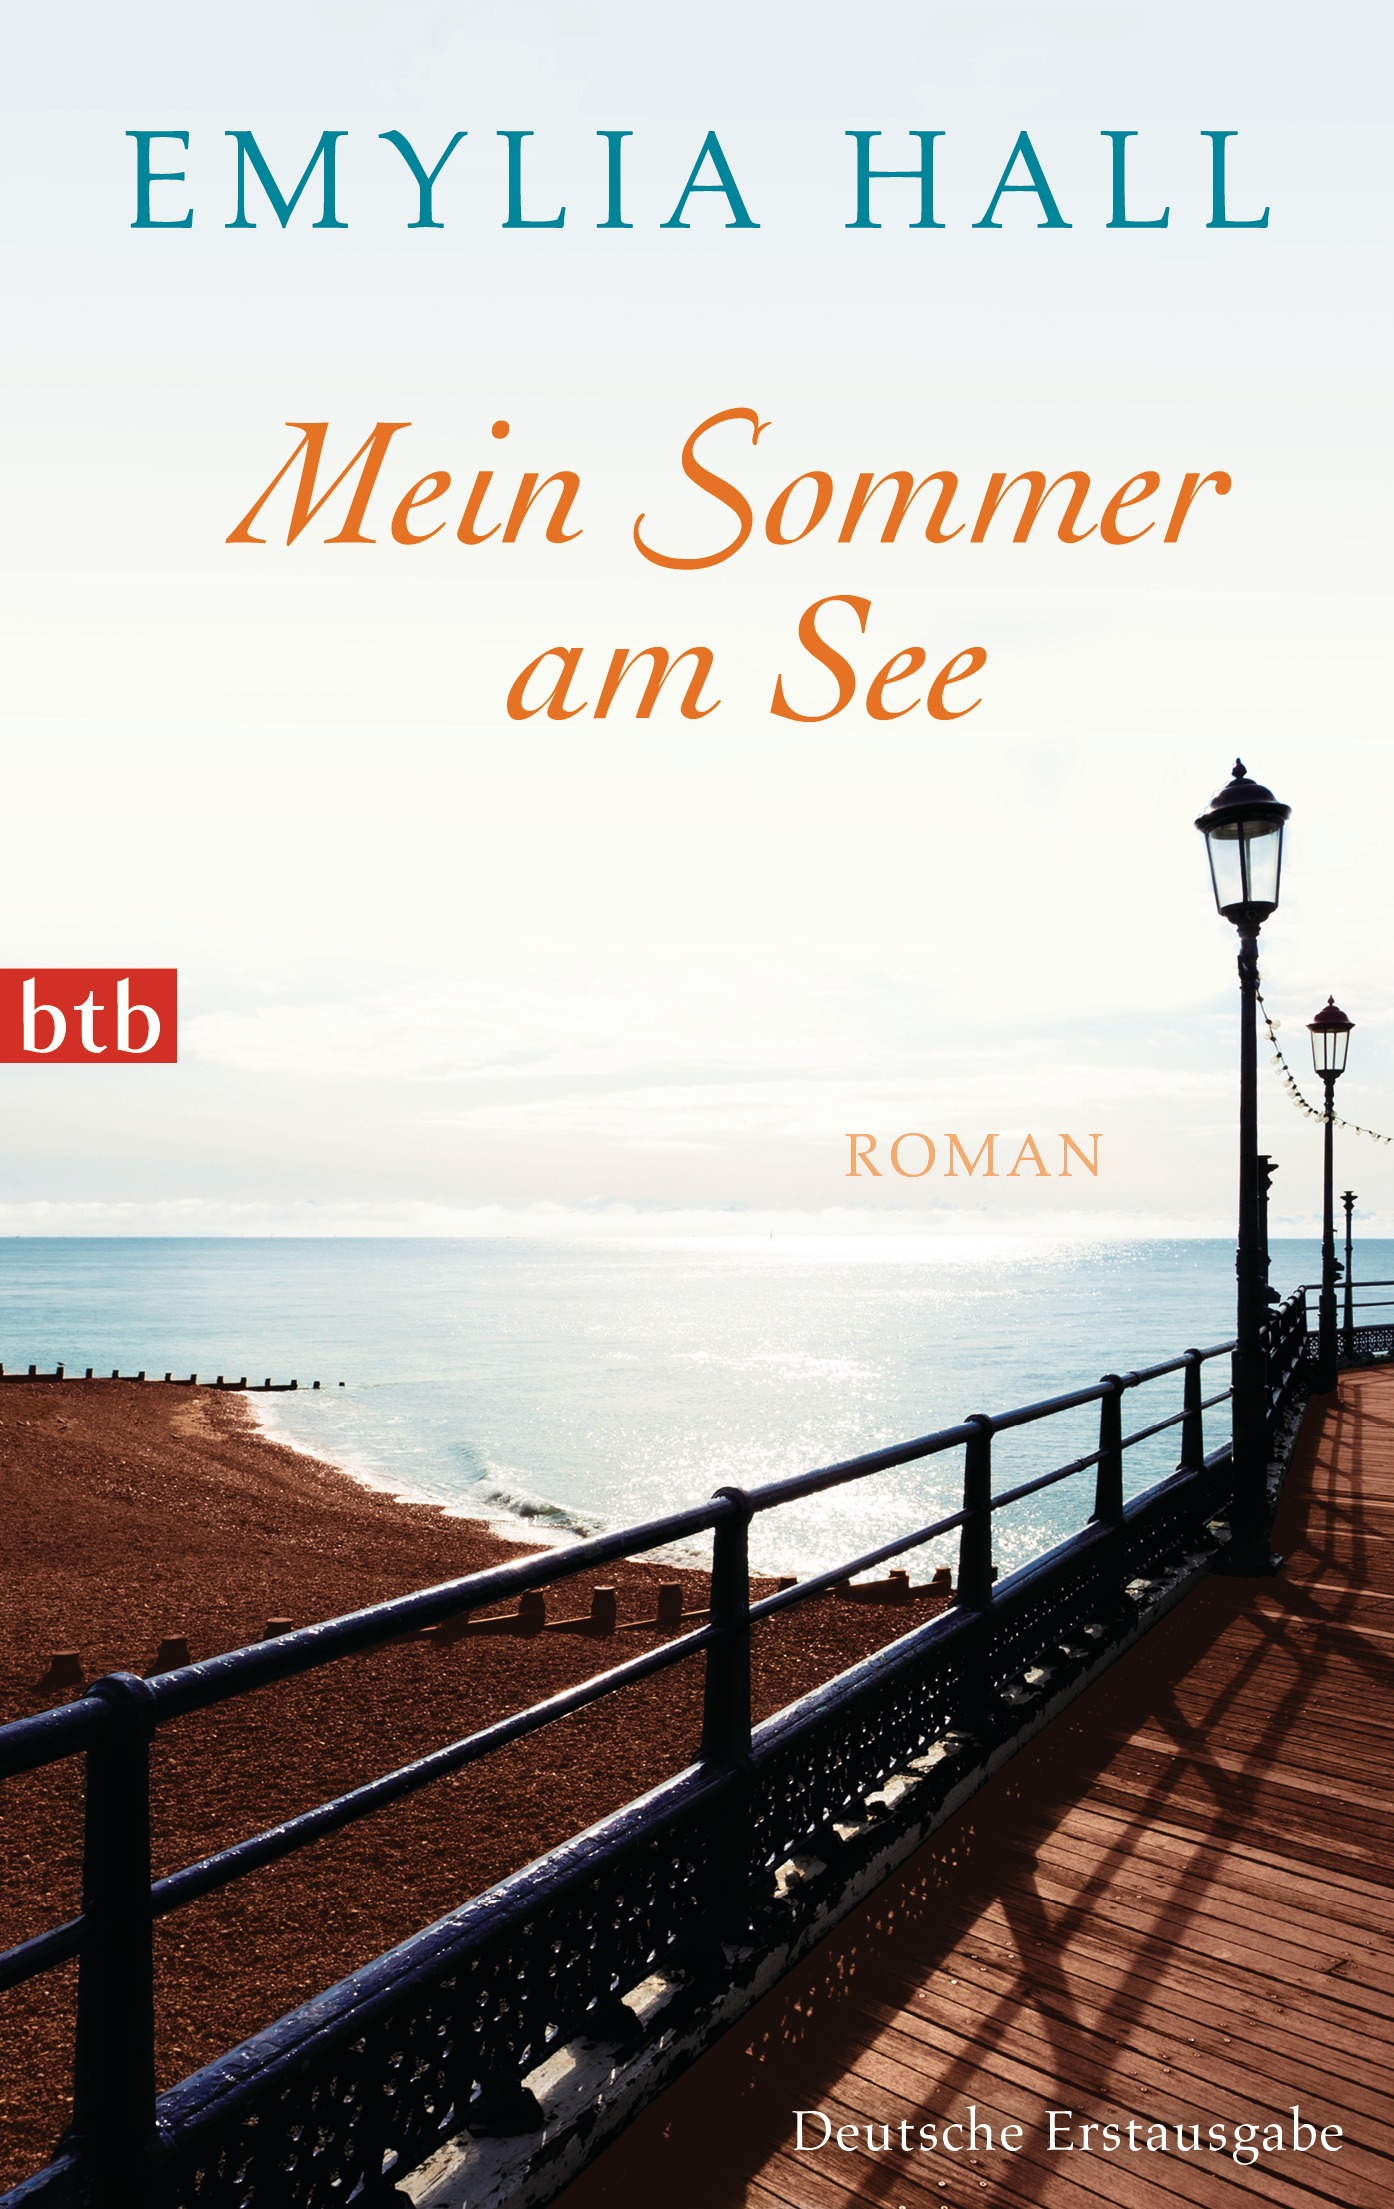 http://www.randomhouse.de/content/edition/covervoila_hires/Hall_EMein_Sommer_am_See_143027.jpg